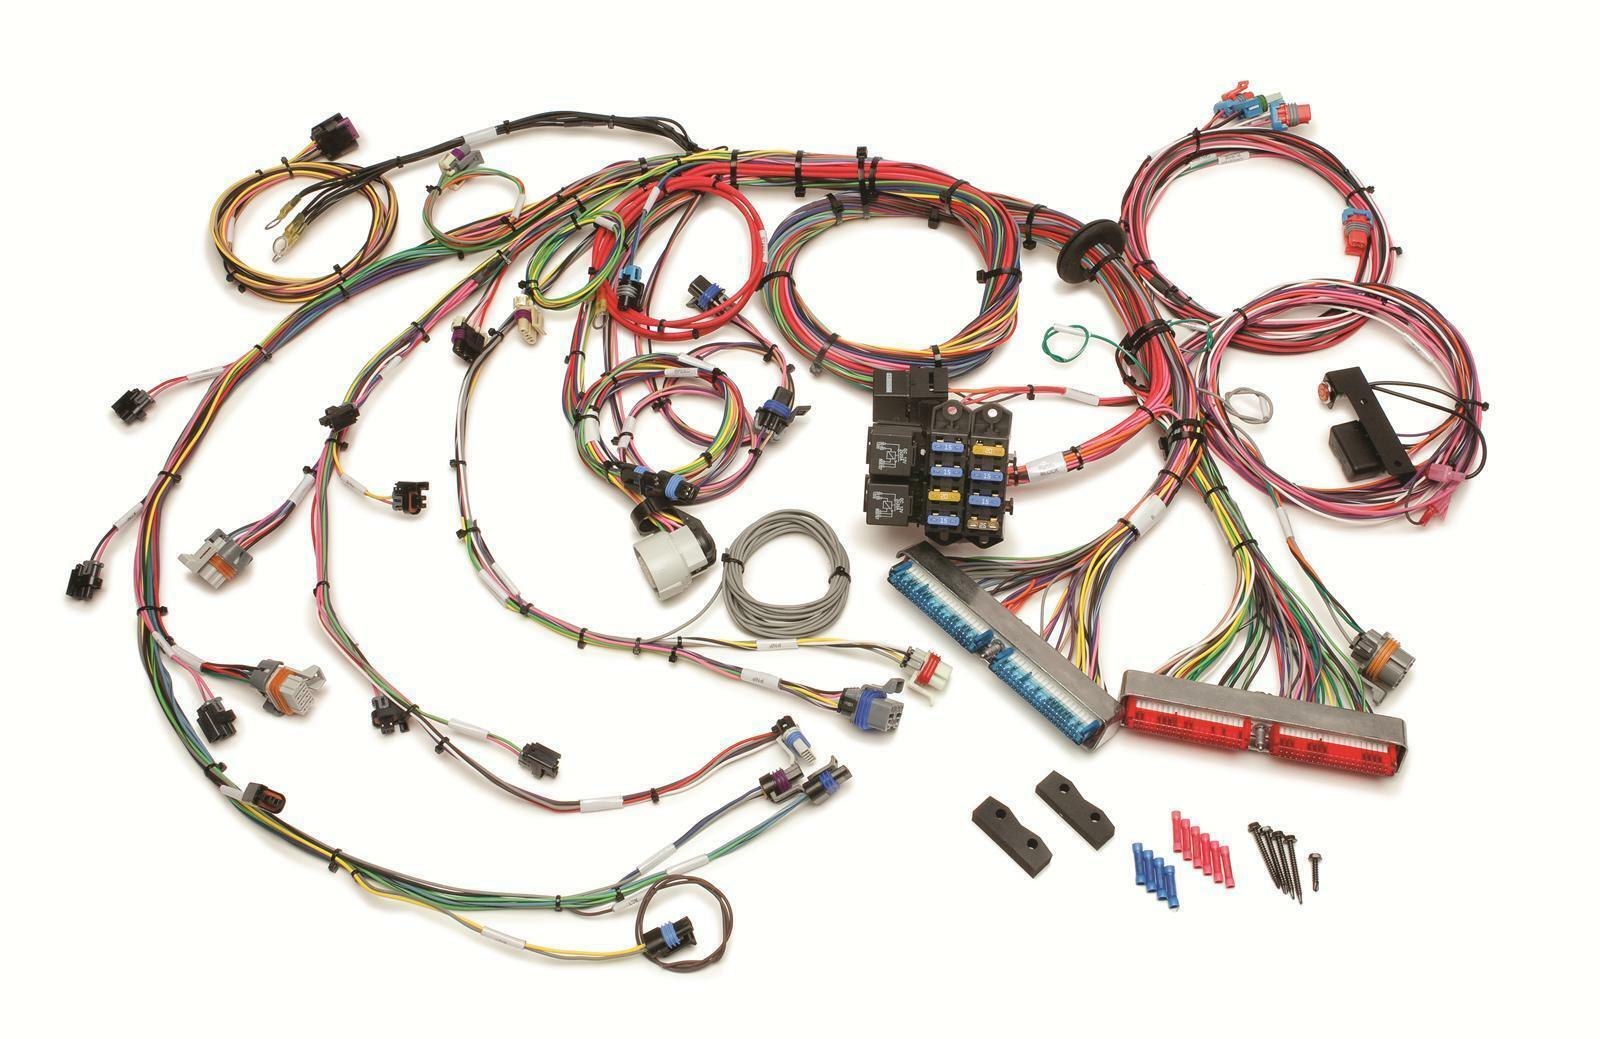 fuel injection harness gm vortec sequential painless wiring 60217 ebay rh ebay com GM Wiring Harness Diagram GM Factory Wiring Harness